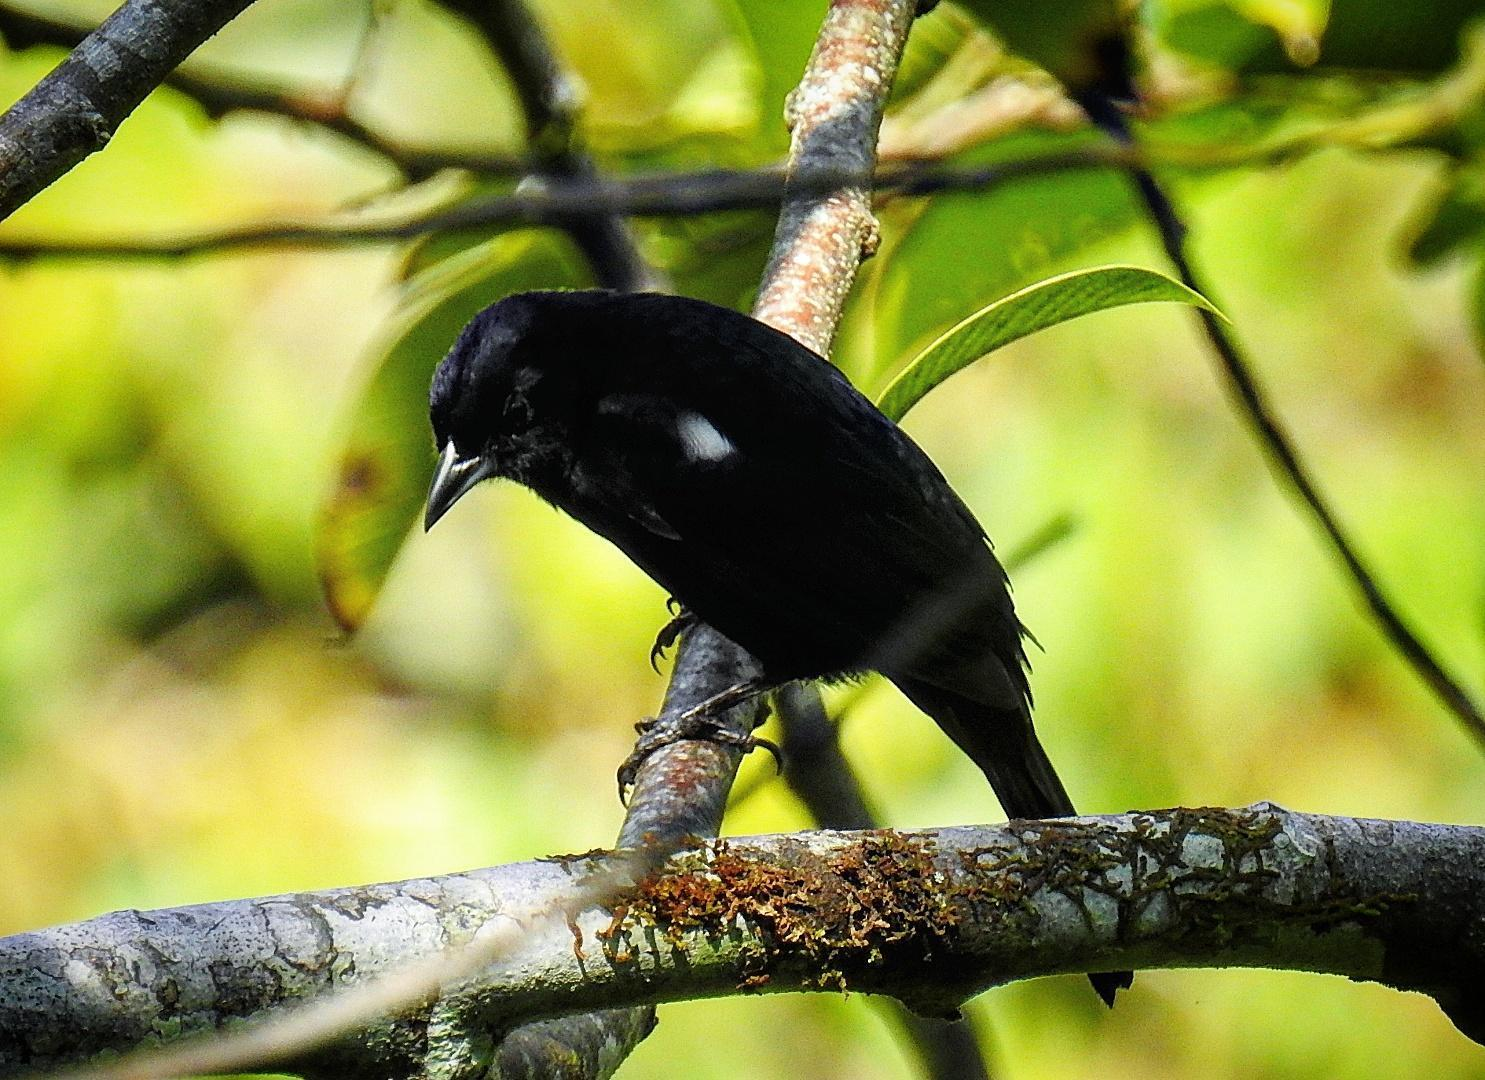 White-shouldered Tanager Photo by Julio Delgado